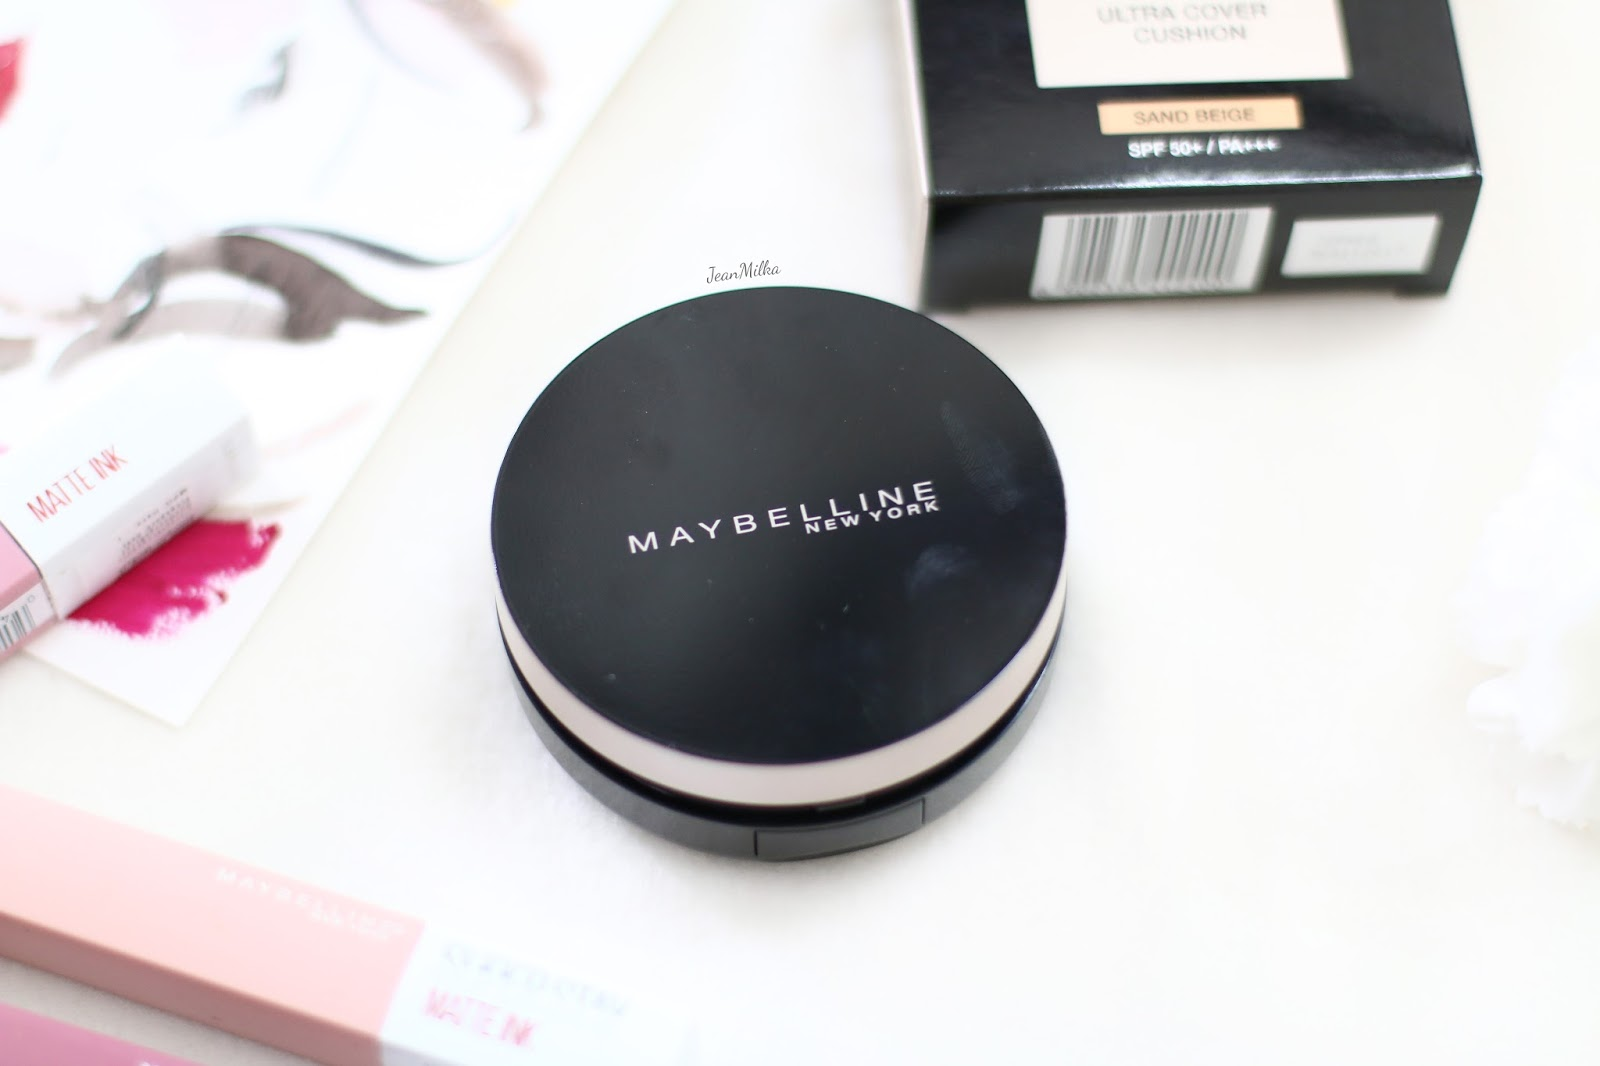 maybelline, maybelline super cushion, maybelline ultra cover cushion, maybelline indonesia, cushion, full coverage cushion, review cushion, makeup, drugstore makeup, maybelline cushion